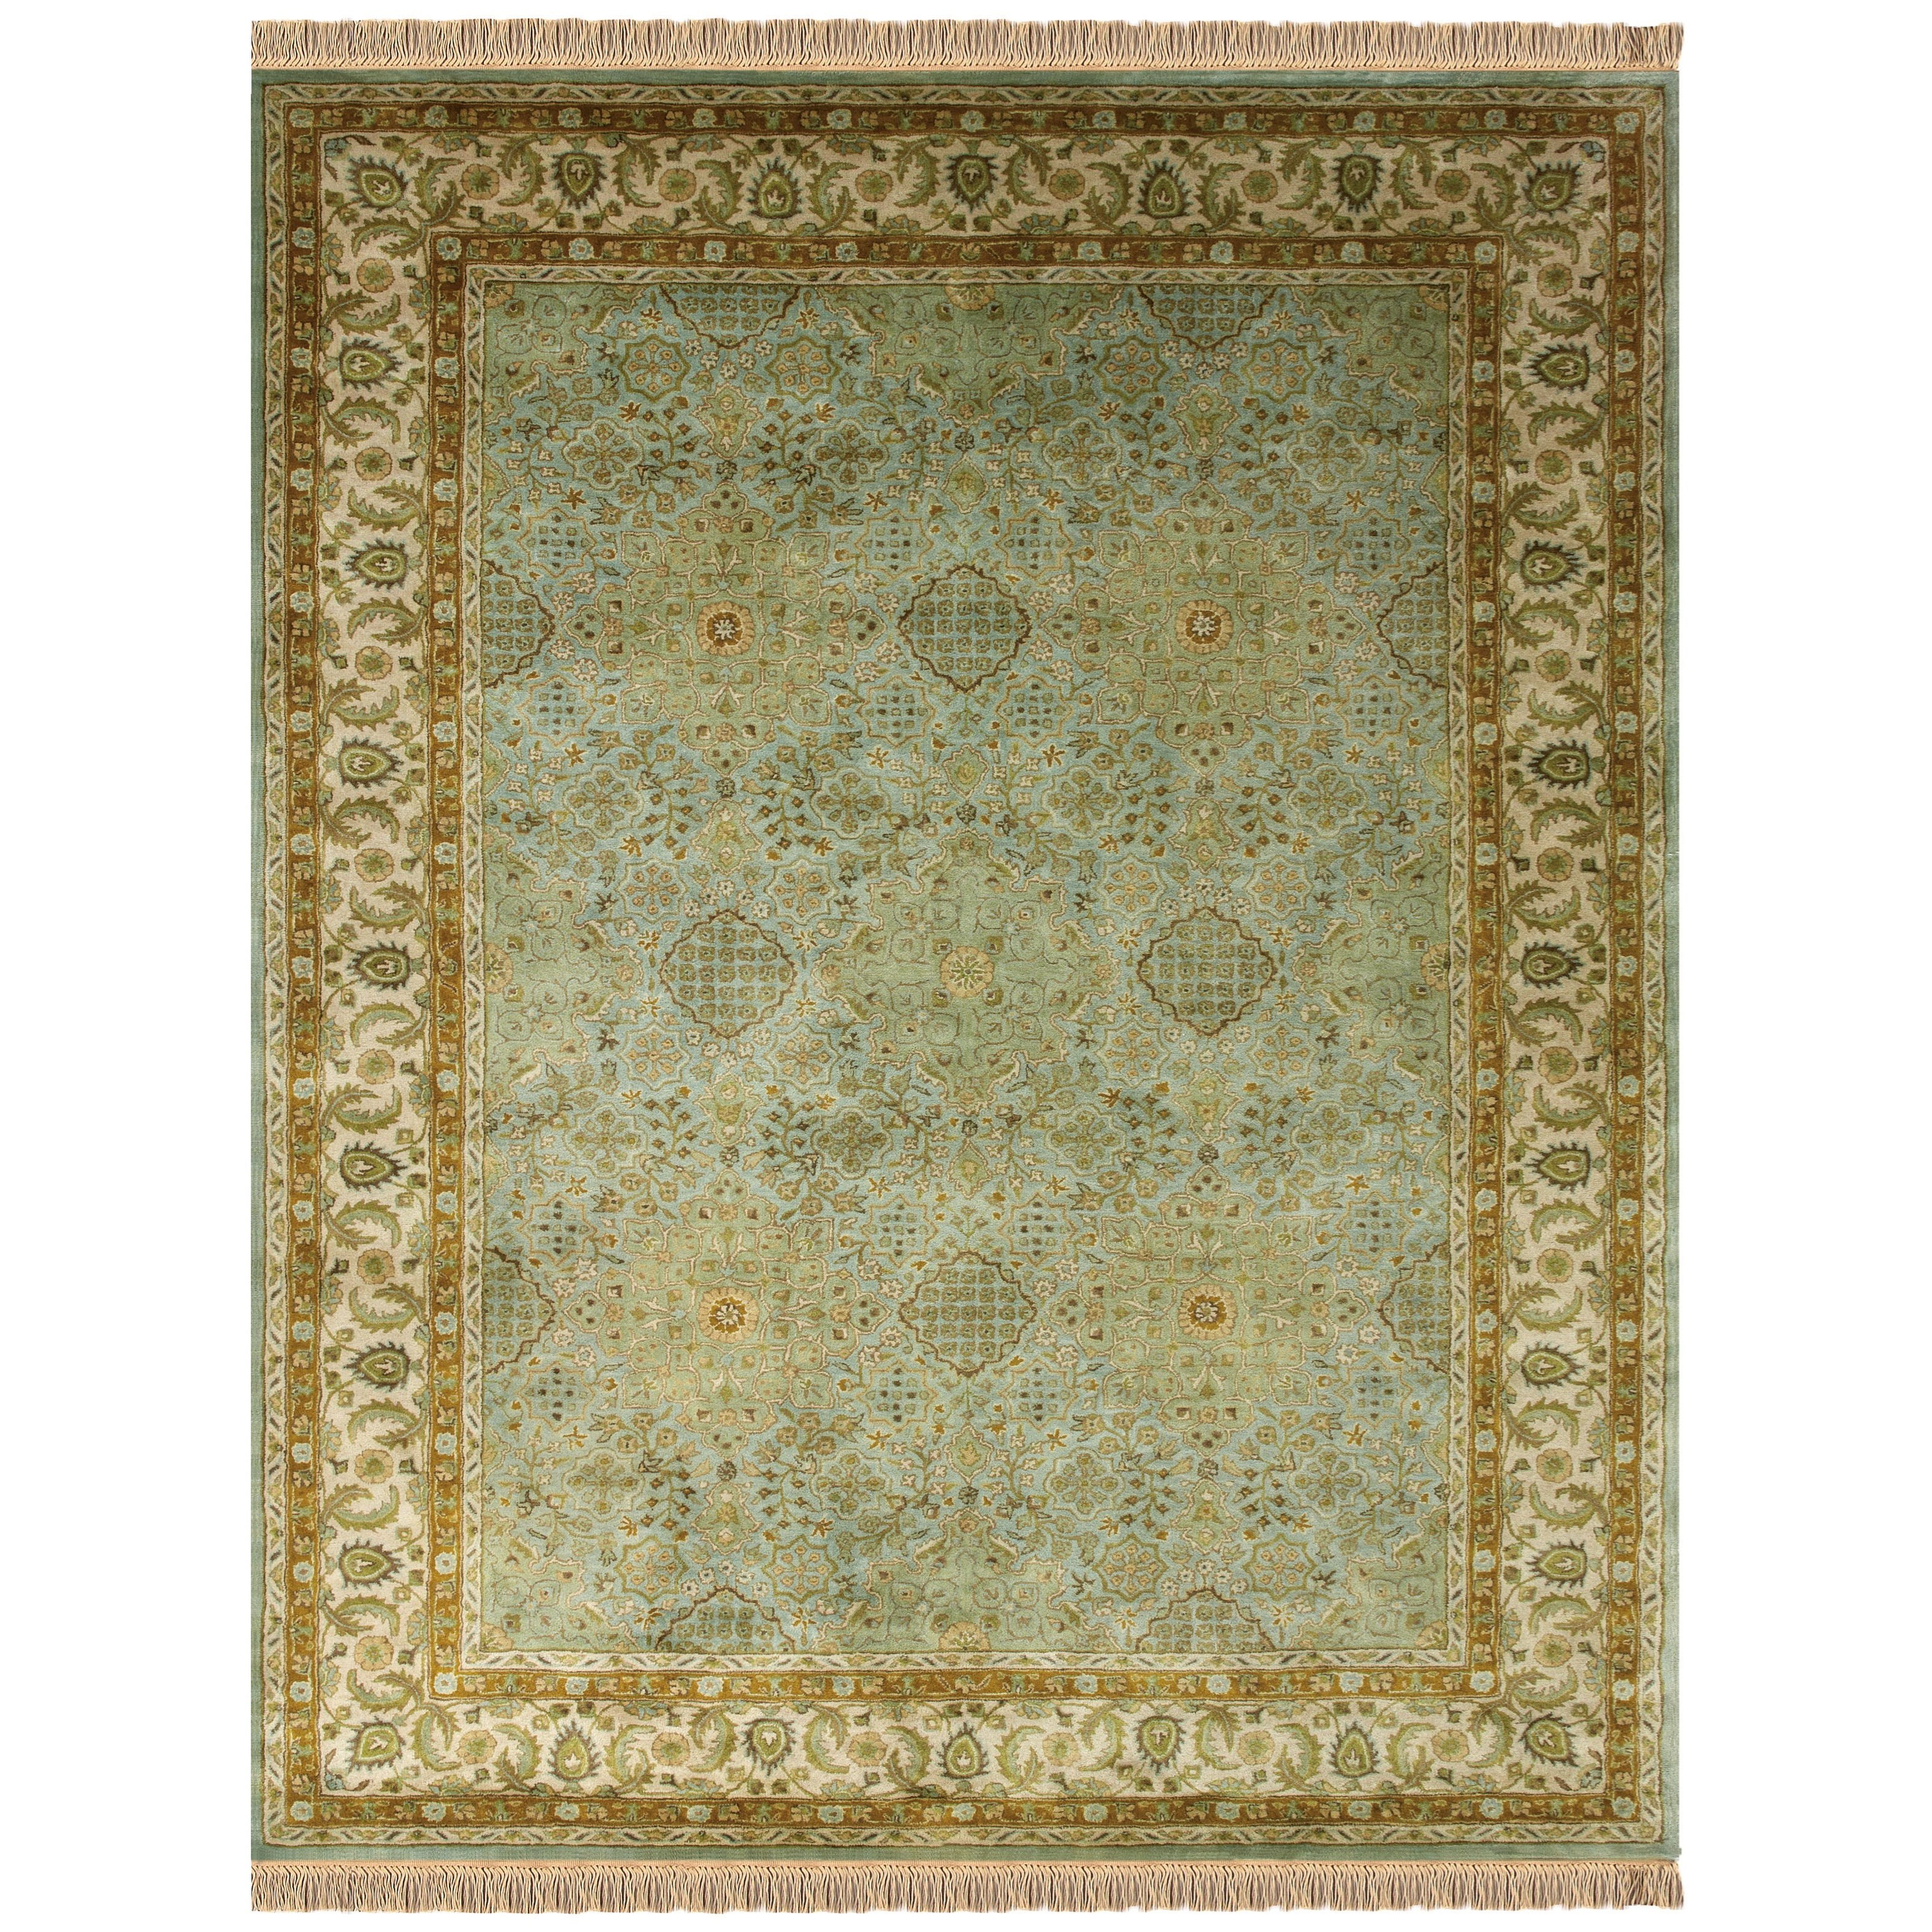 Amore Ocean/Beige 8' X 11' Area Rug by Feizy Rugs at Sprintz Furniture